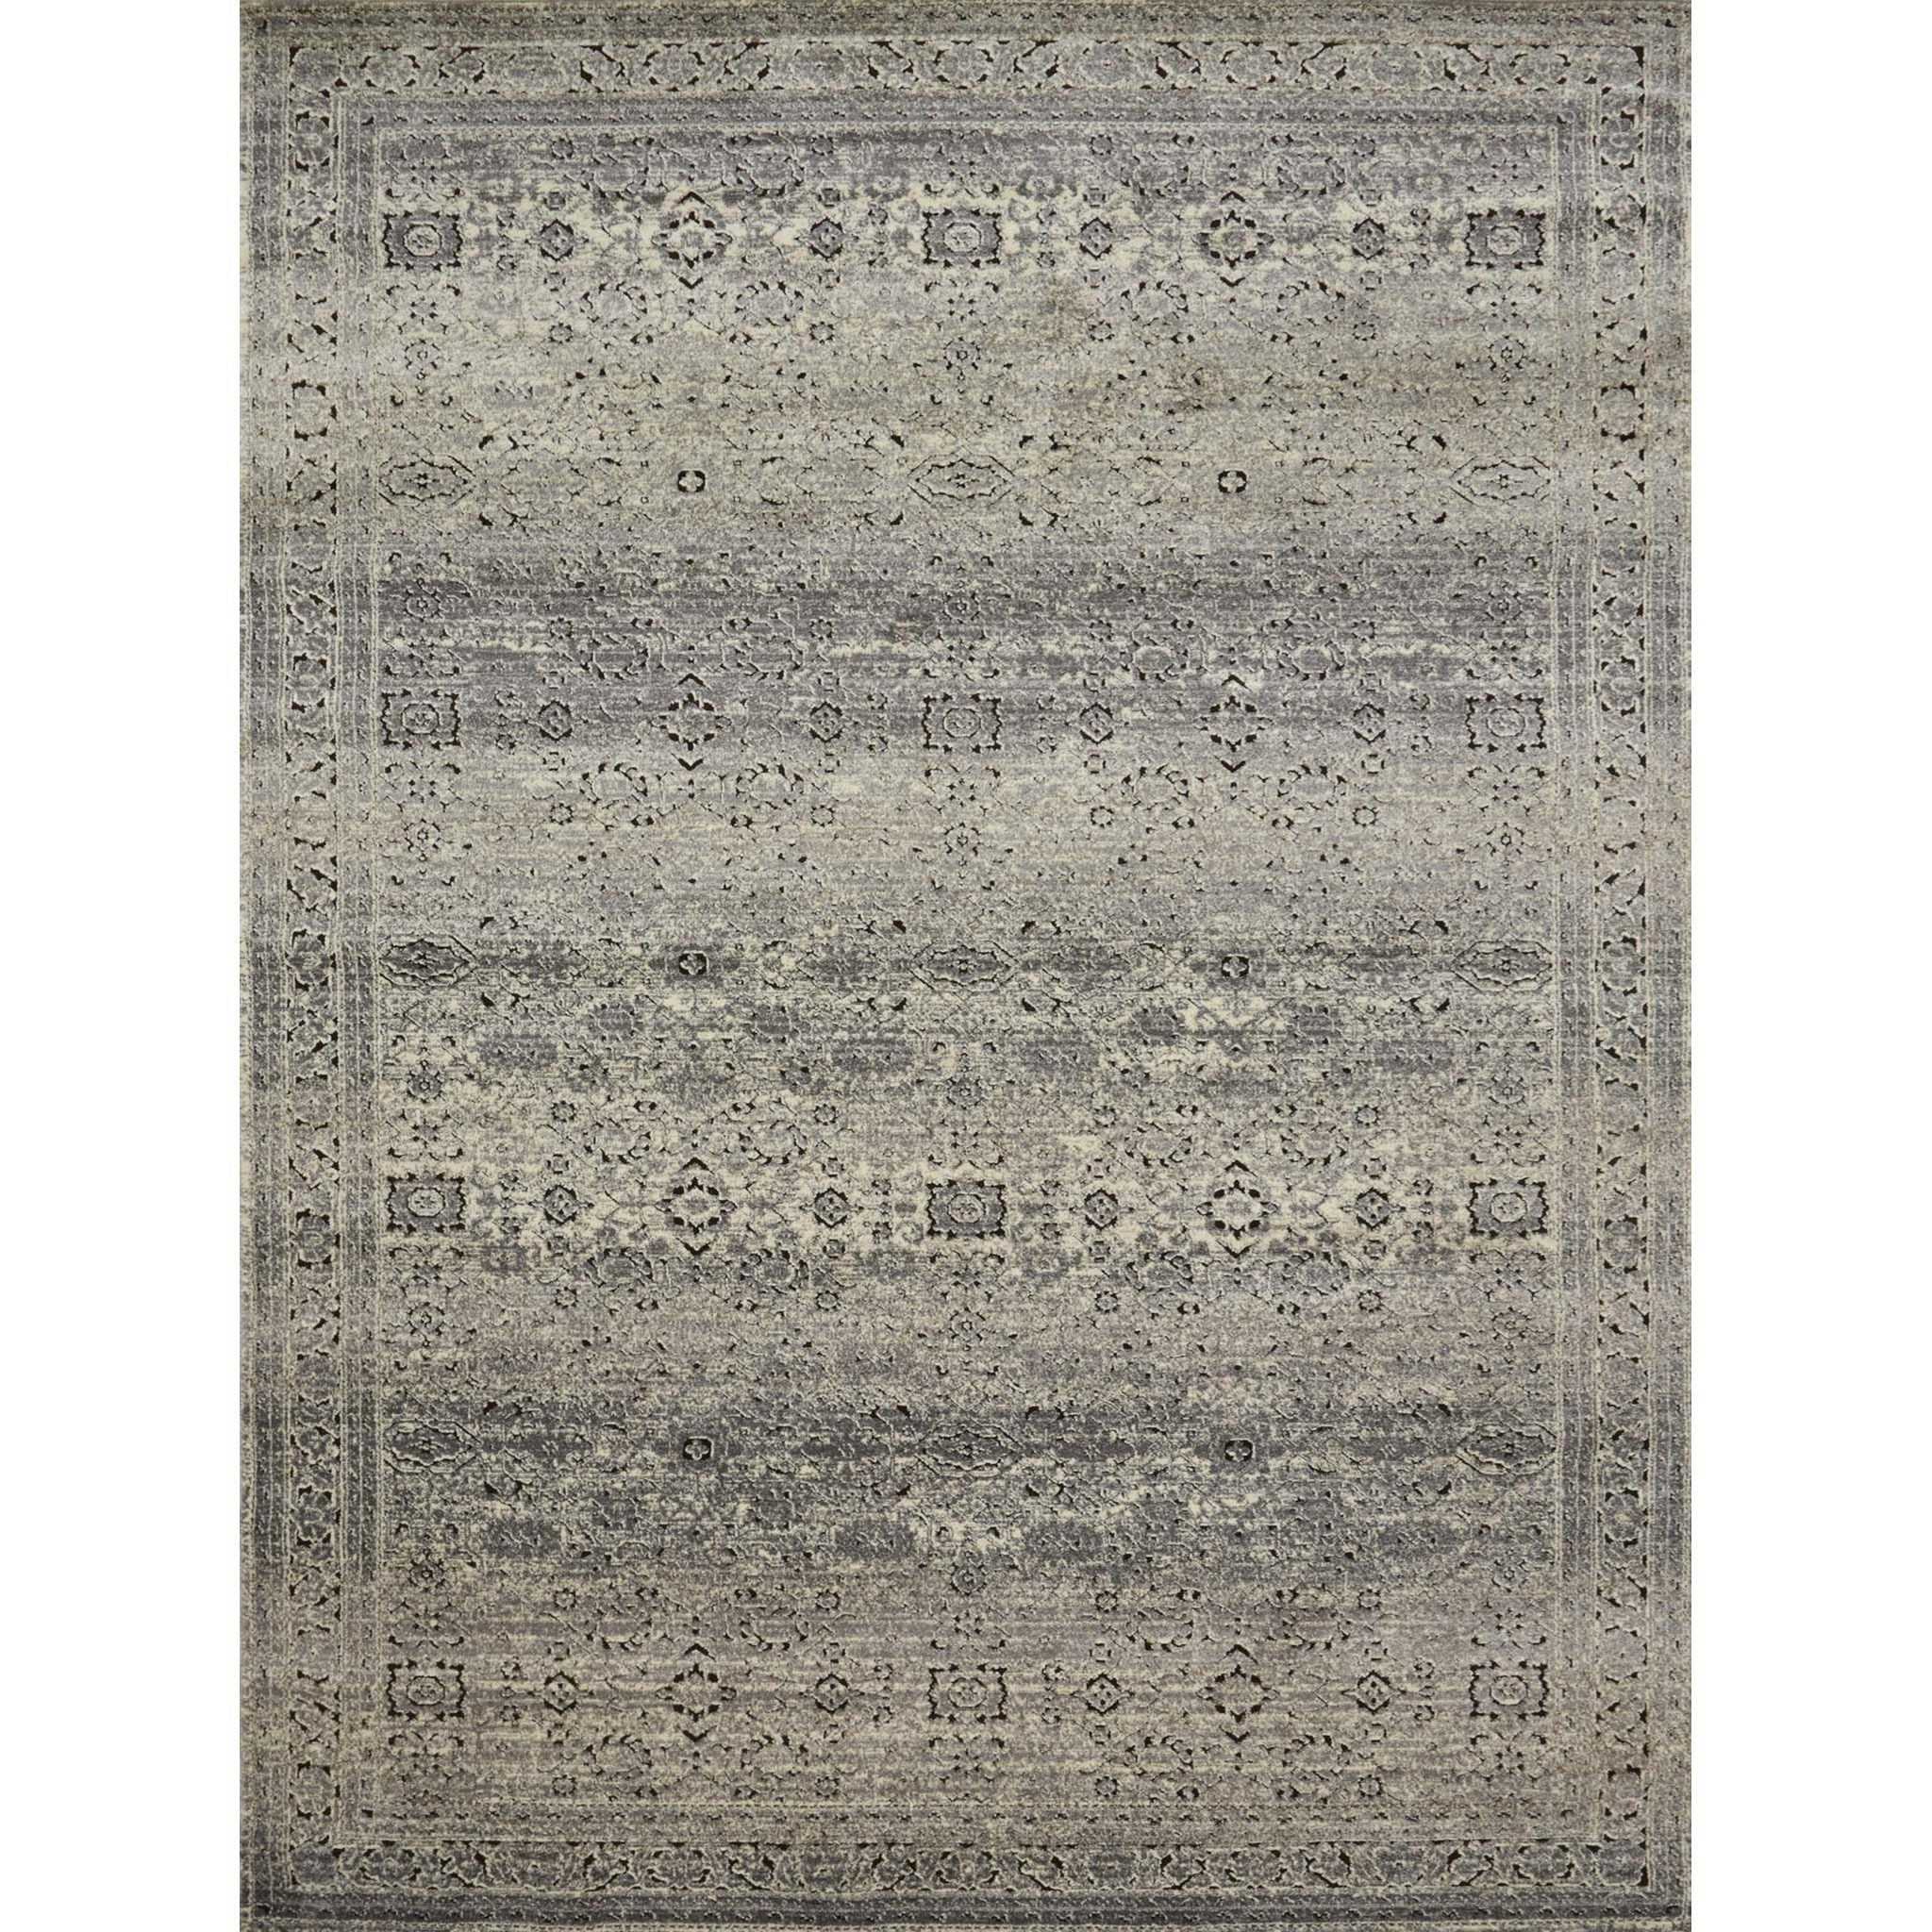 """Millennium 12'-0"""" x 15'-0"""" Area Rug by Loloi Rugs at Virginia Furniture Market"""